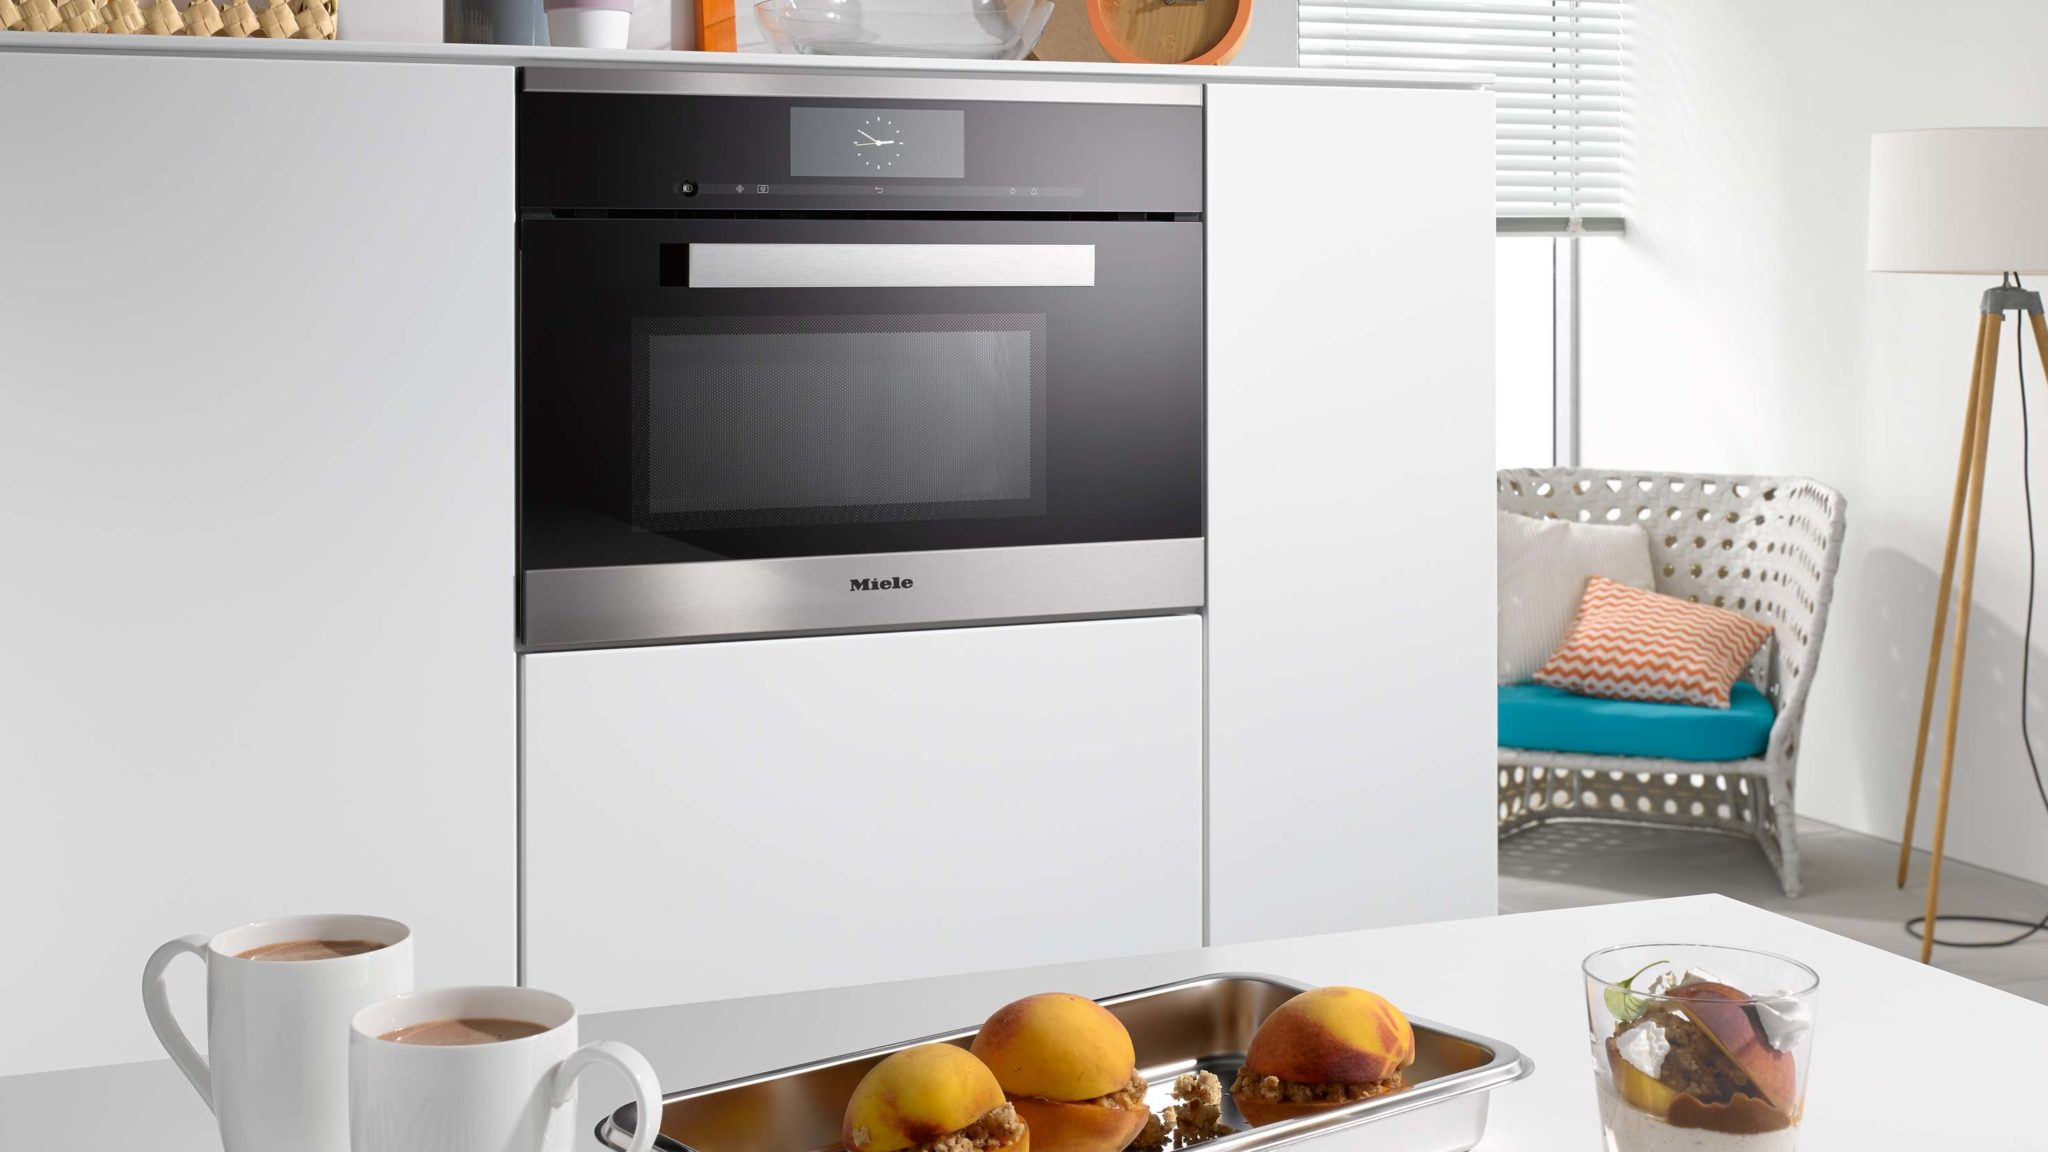 KOKO Knows: The Microwave Oven Was An Accidental Product Of Military ...